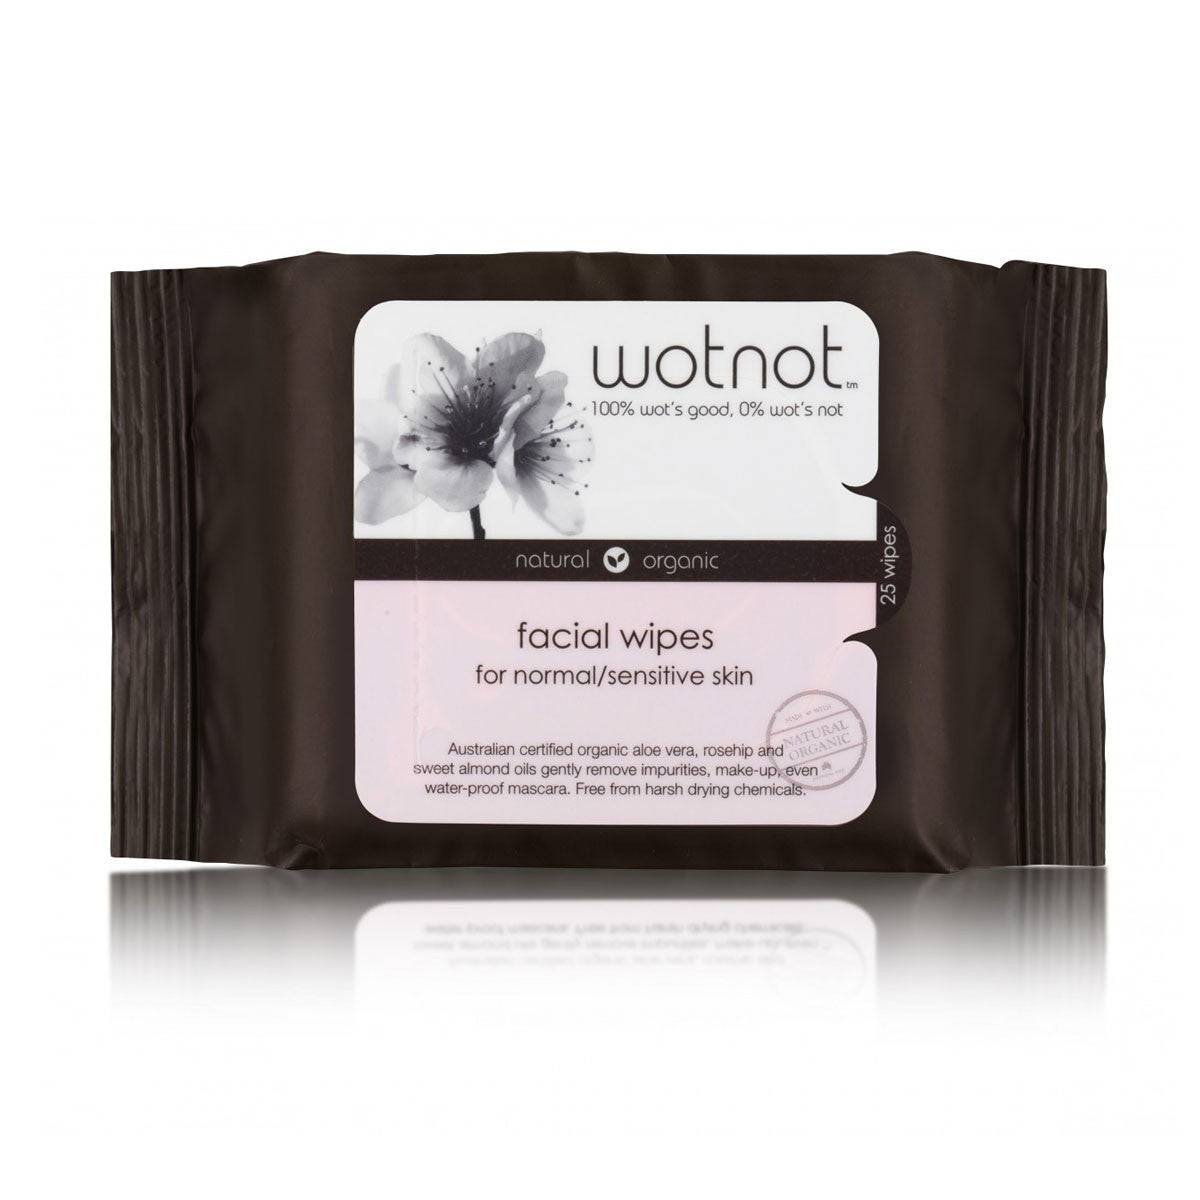 Wotnot Facial Wipes Natural Makeup Removers 25 Wipes Wotnot General at Little Earth Nest Eco Shop